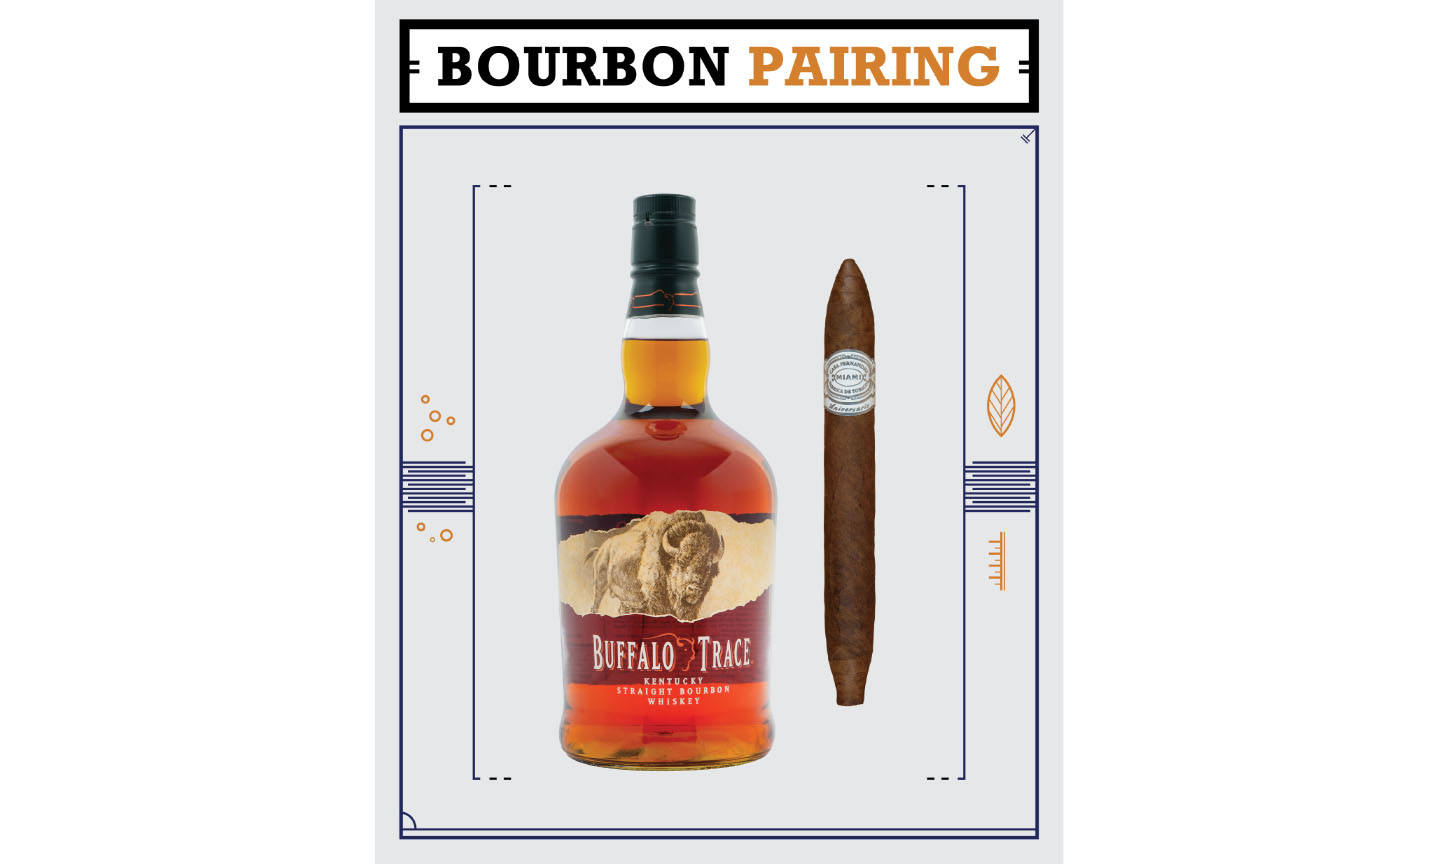 Buffalo Trace is a hot commodity these days and for good reason. Some of the most sought after bourbons are produced at the Buffalo Trace Distillery; think Pappy Van Winkle, Blanton's, and W.L. Weller, to drop a name or three.